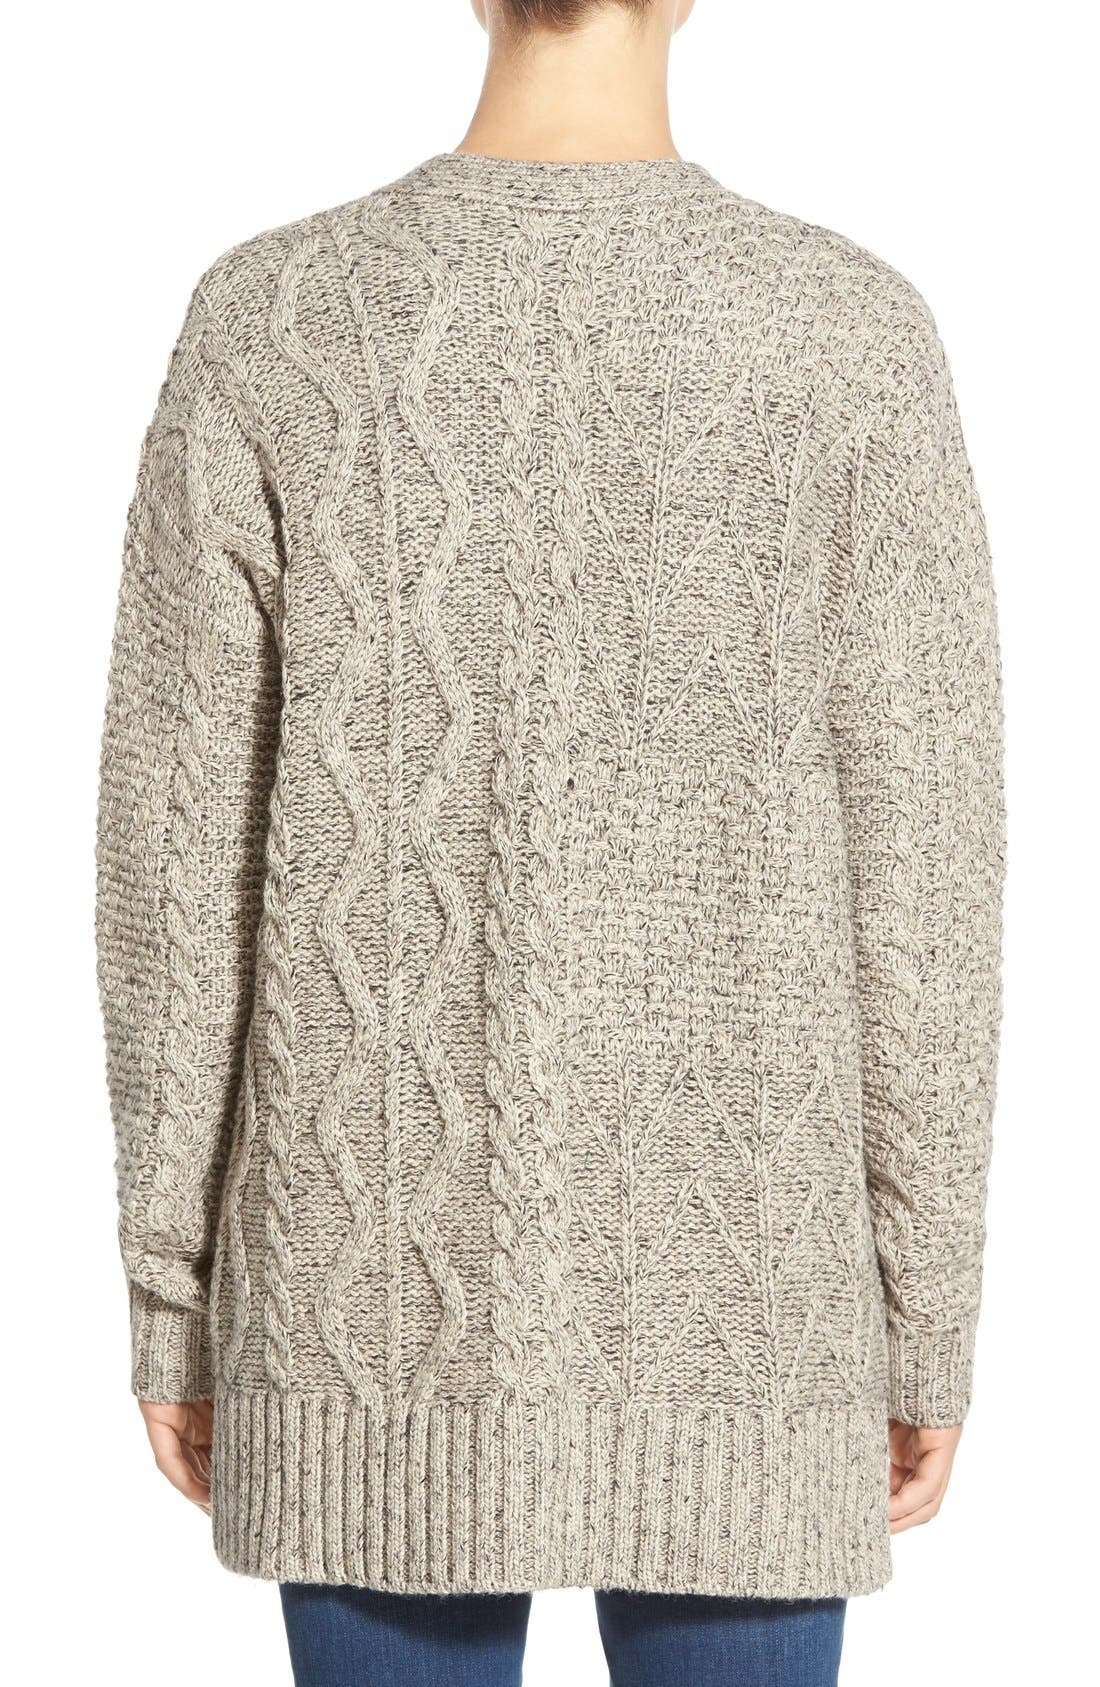 Marled Panel Stitch Open Front Cardigan,                             Alternate thumbnail 4, color,                             250